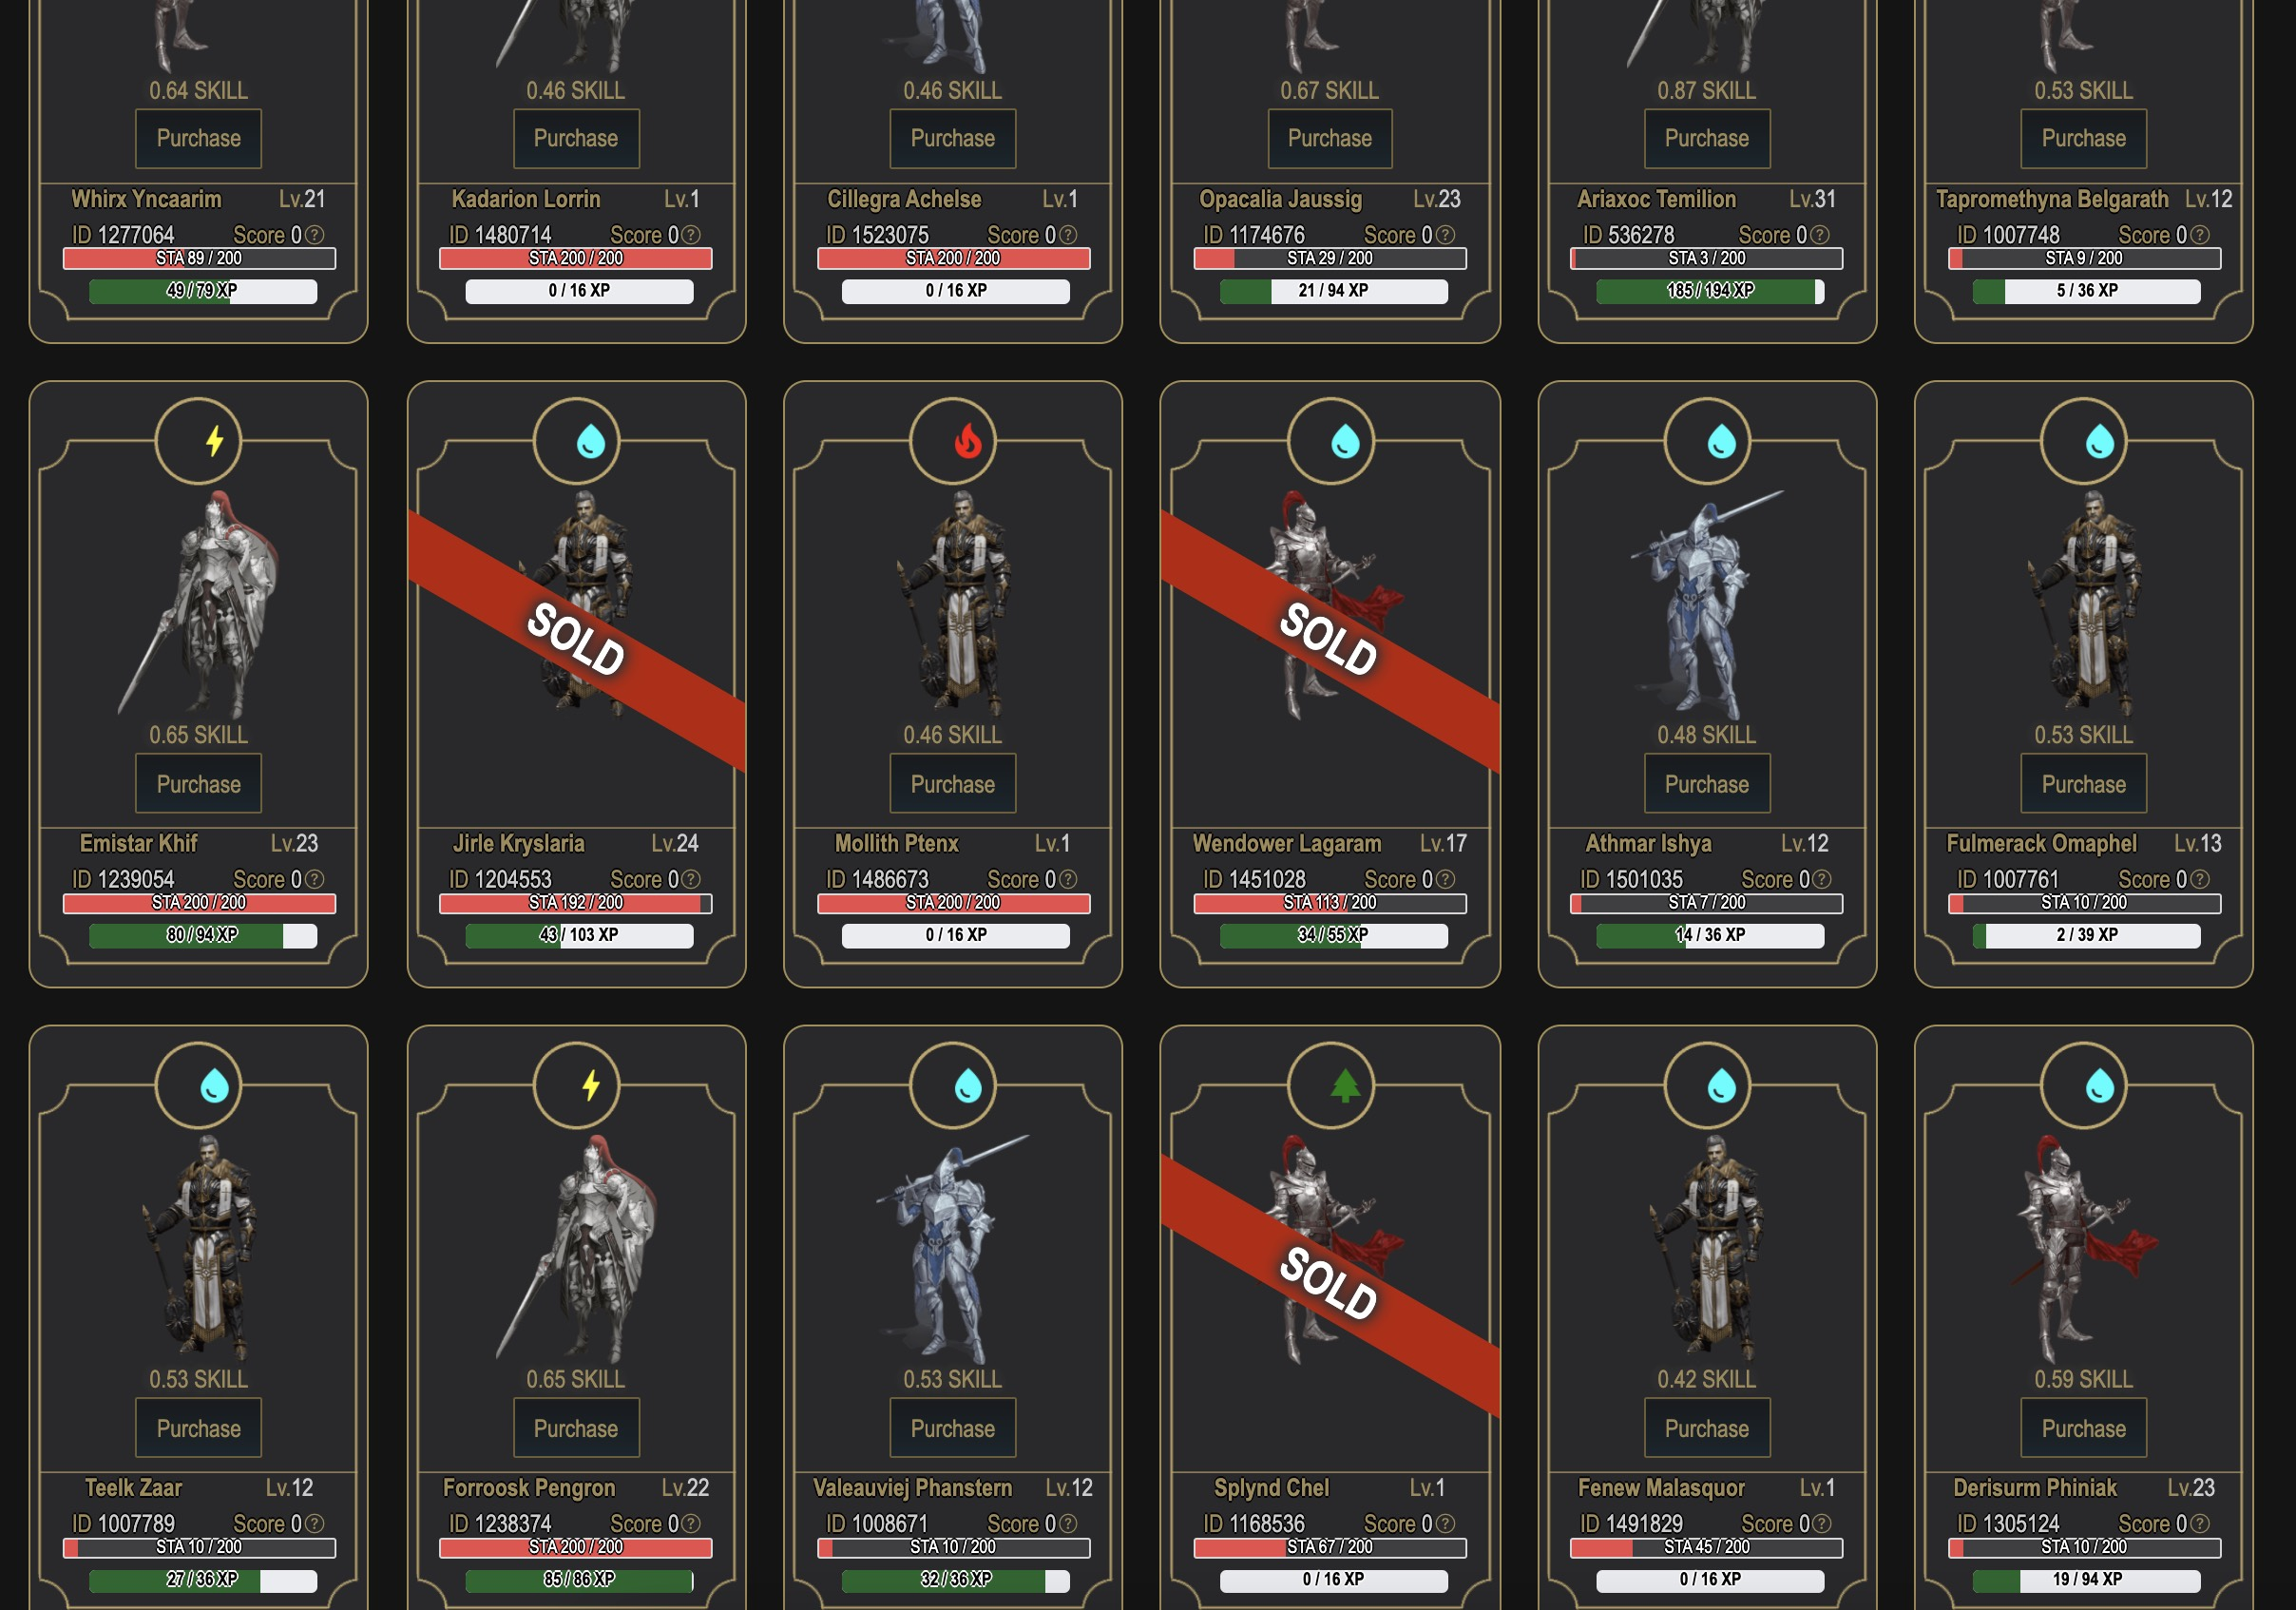 How to Sell Characters in CryptoBlades (Step-by-Step Guide)